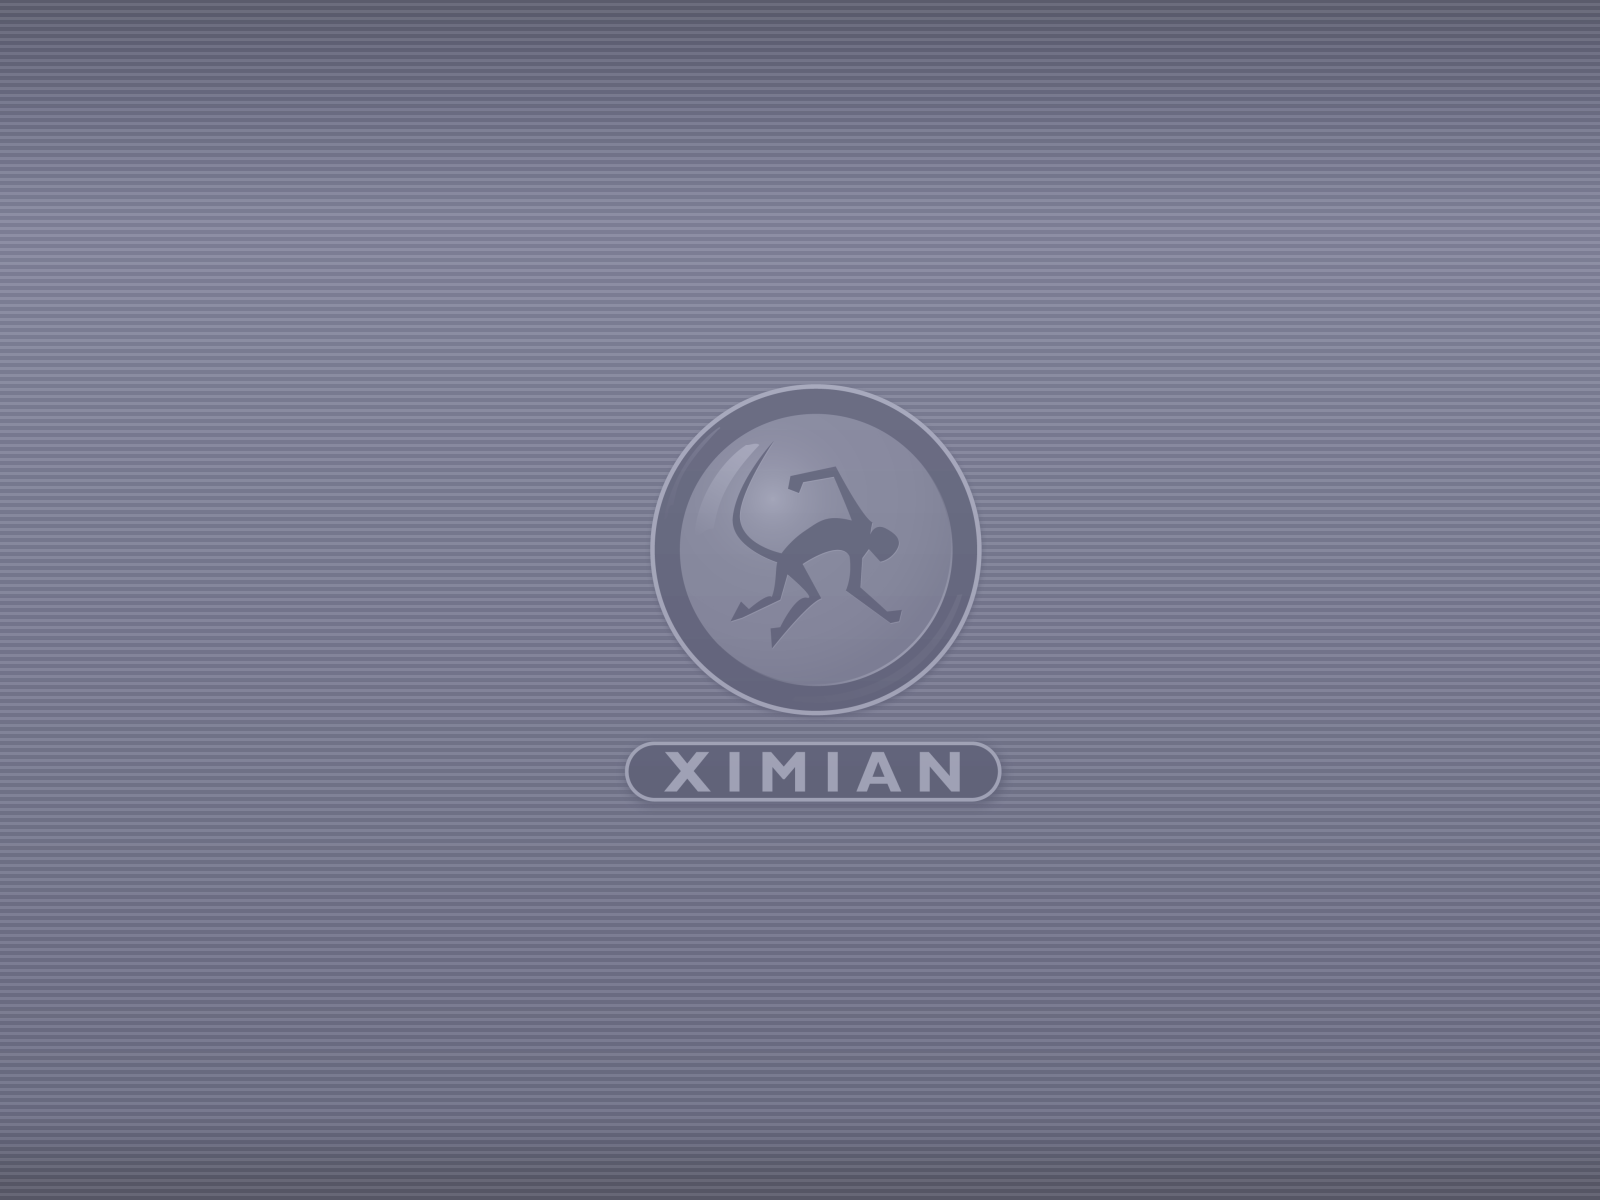 Other Linux wallpaper 11